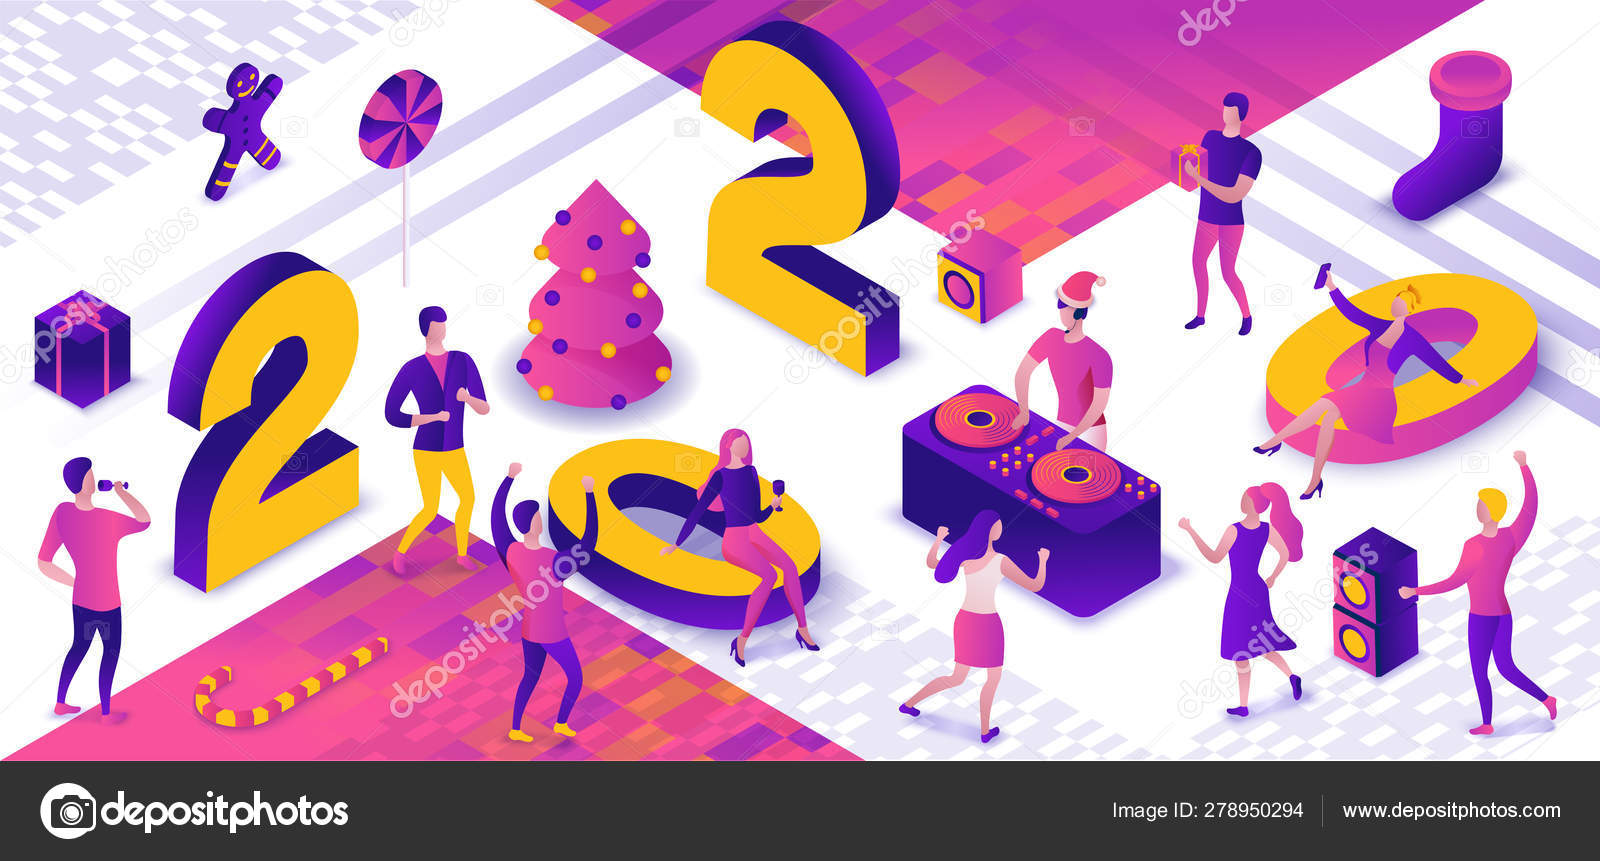 New year party 3d isometric illustration, dj playing club